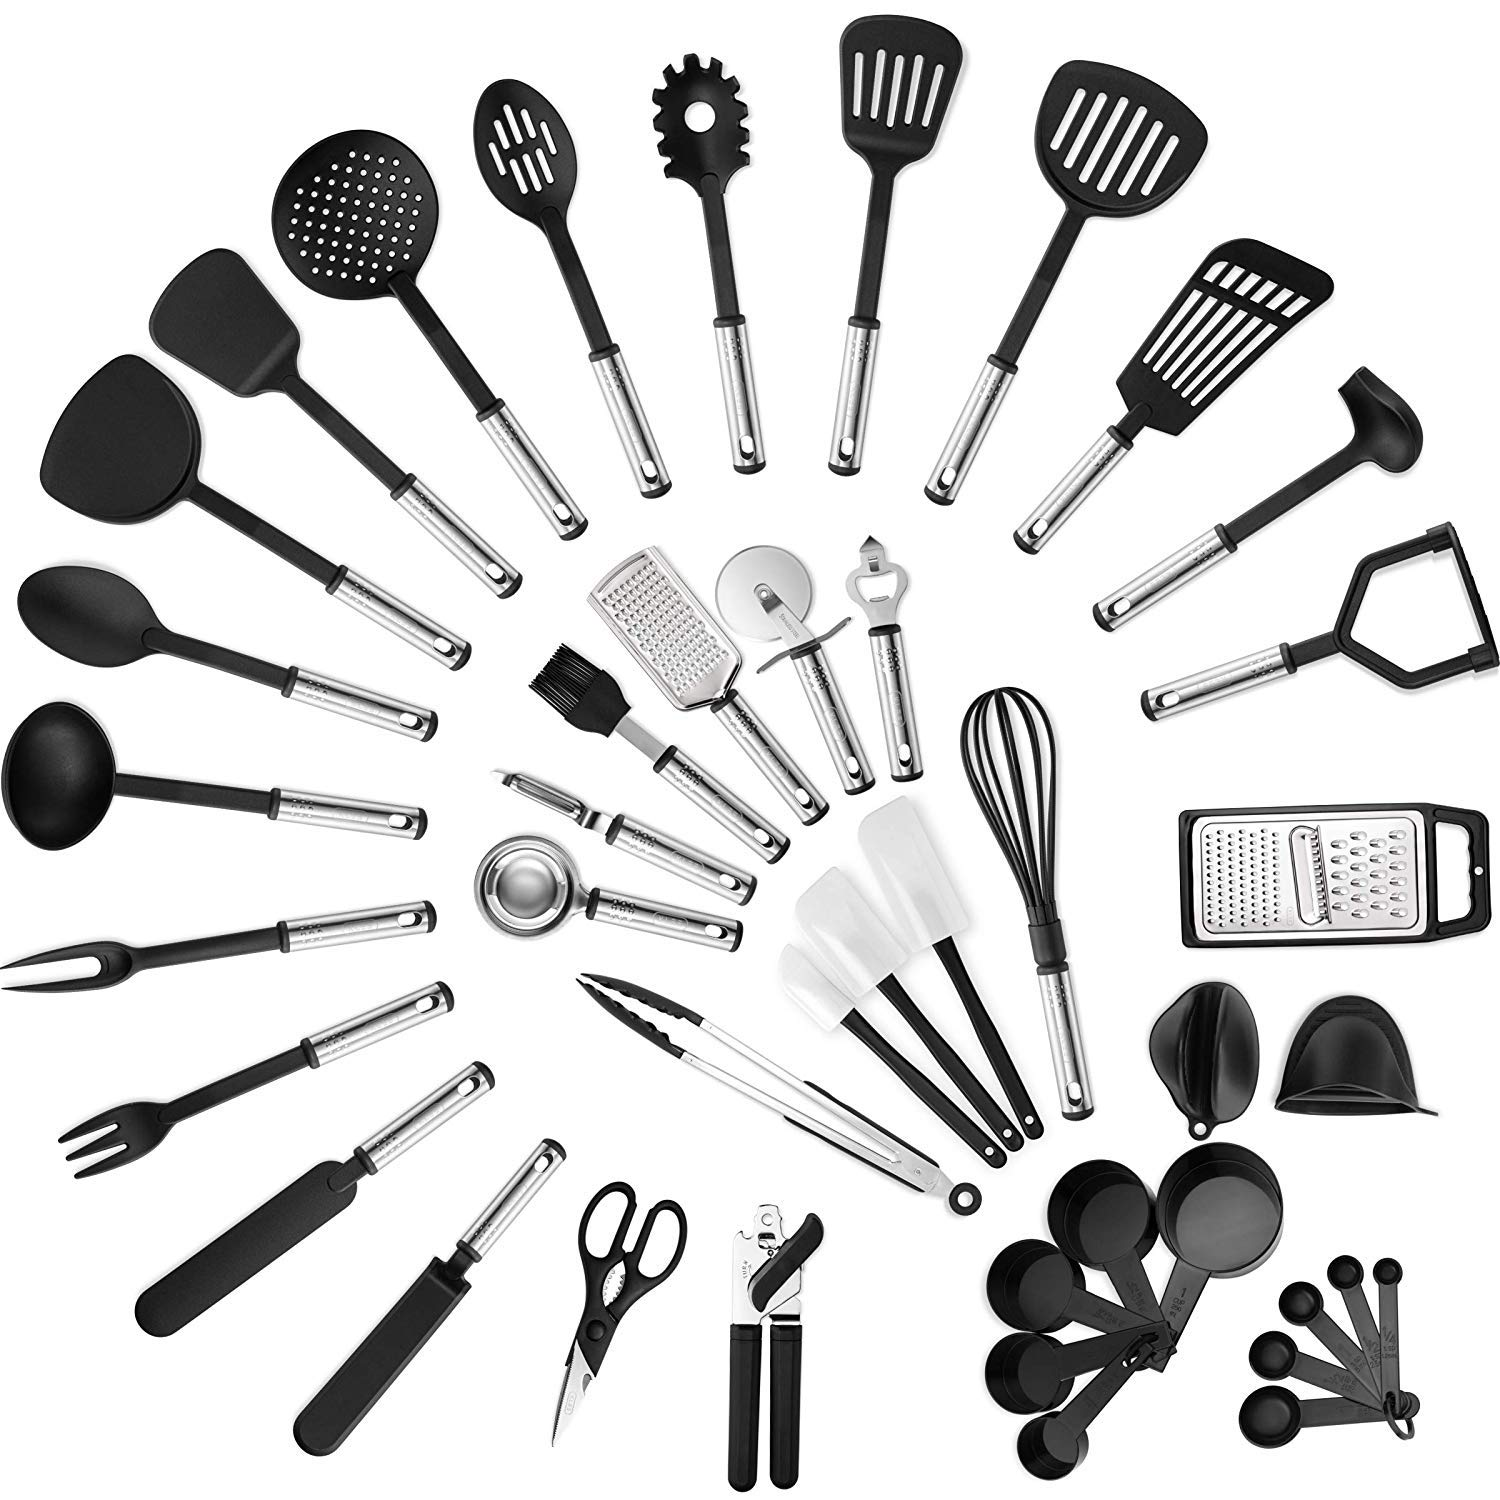 MAXXV Kitchen Utensil Set -42-Pieces Cooking Utensils - Nylon and Stainless Steel Utensil set - Nonstick Kitchen Utensils Spatula Set - Complete Cooking Tool set - Best Kitchen Gadgets for Gift by MAXXV